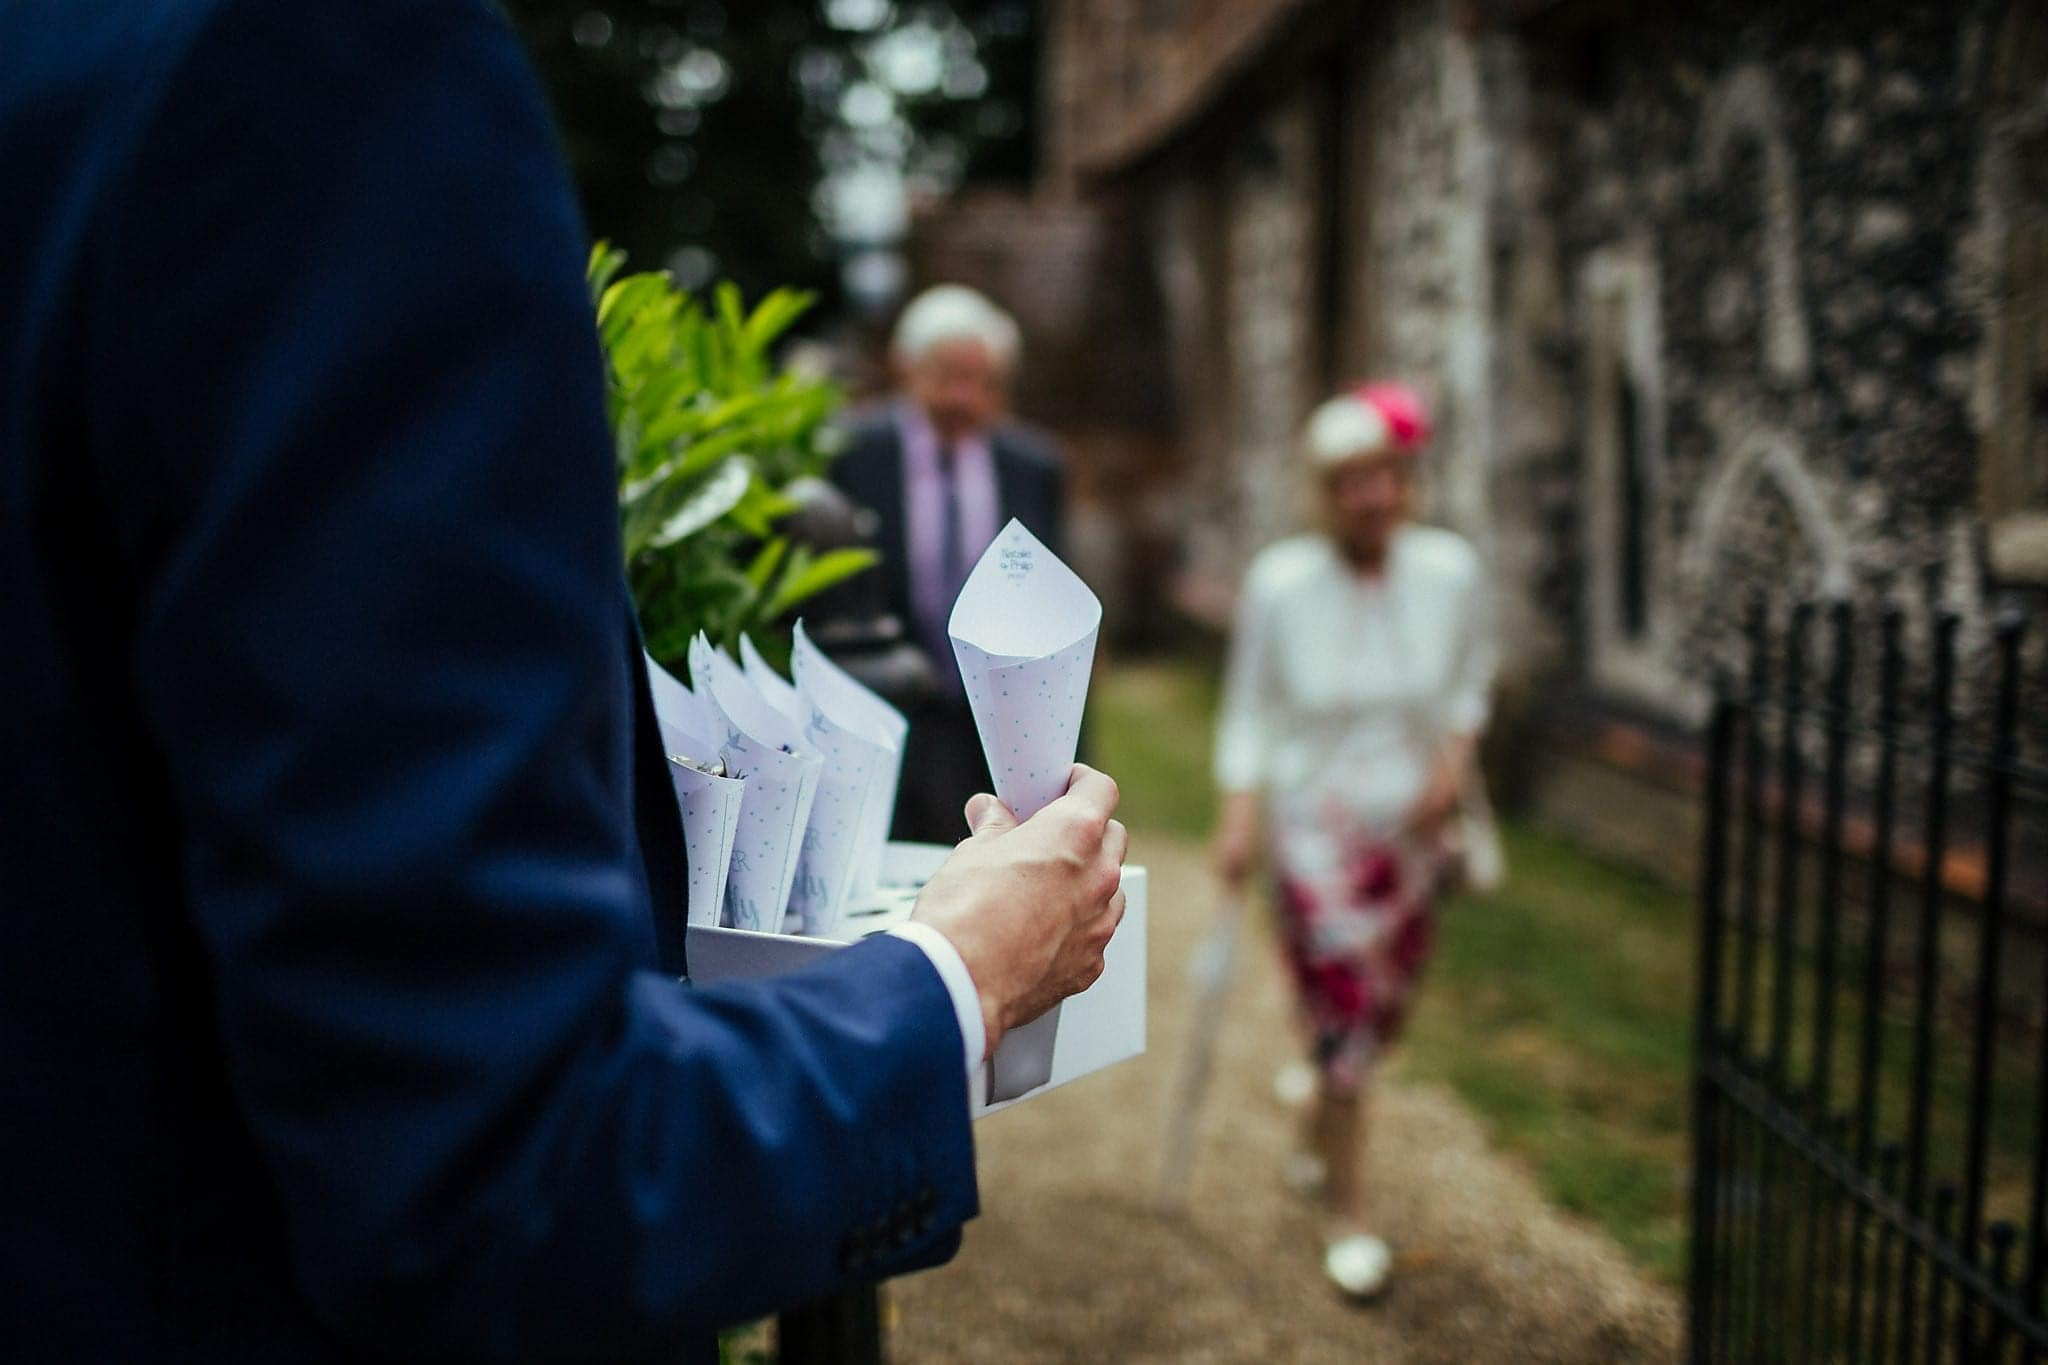 Usher holding confetti cones at Dorney Court Church